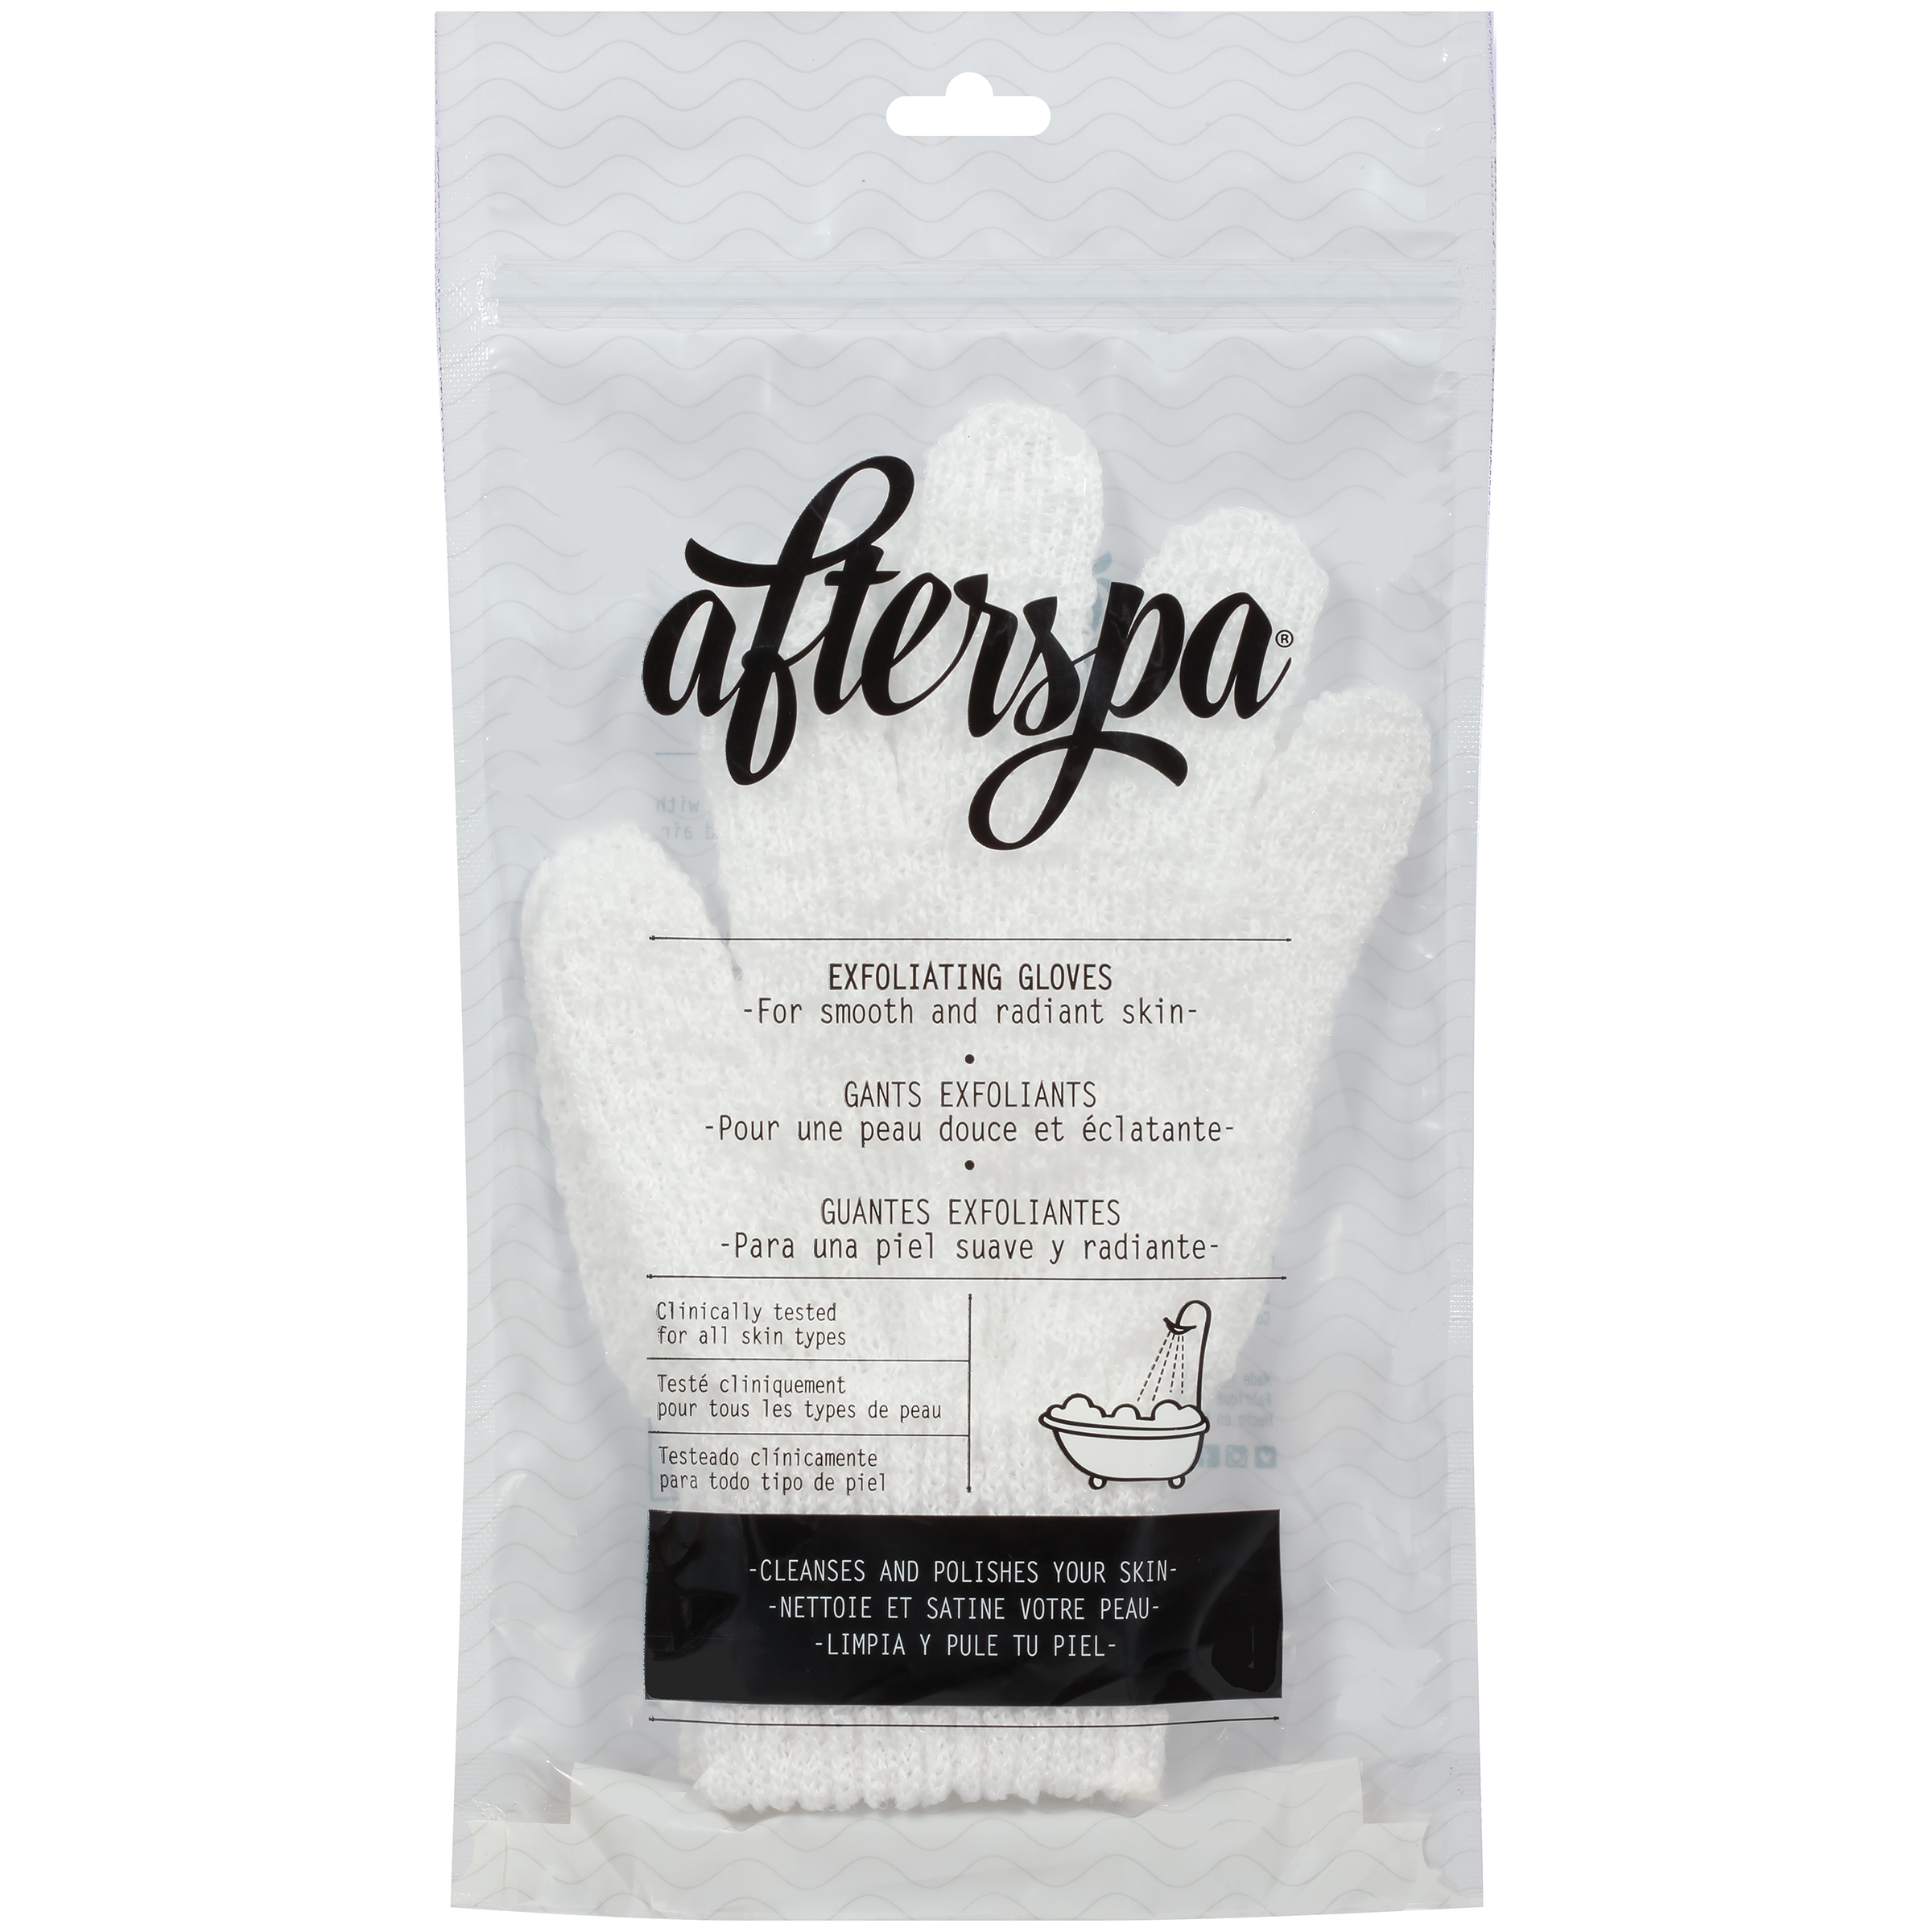 Afterspa Exfoliating Bath Gloves, 2 count